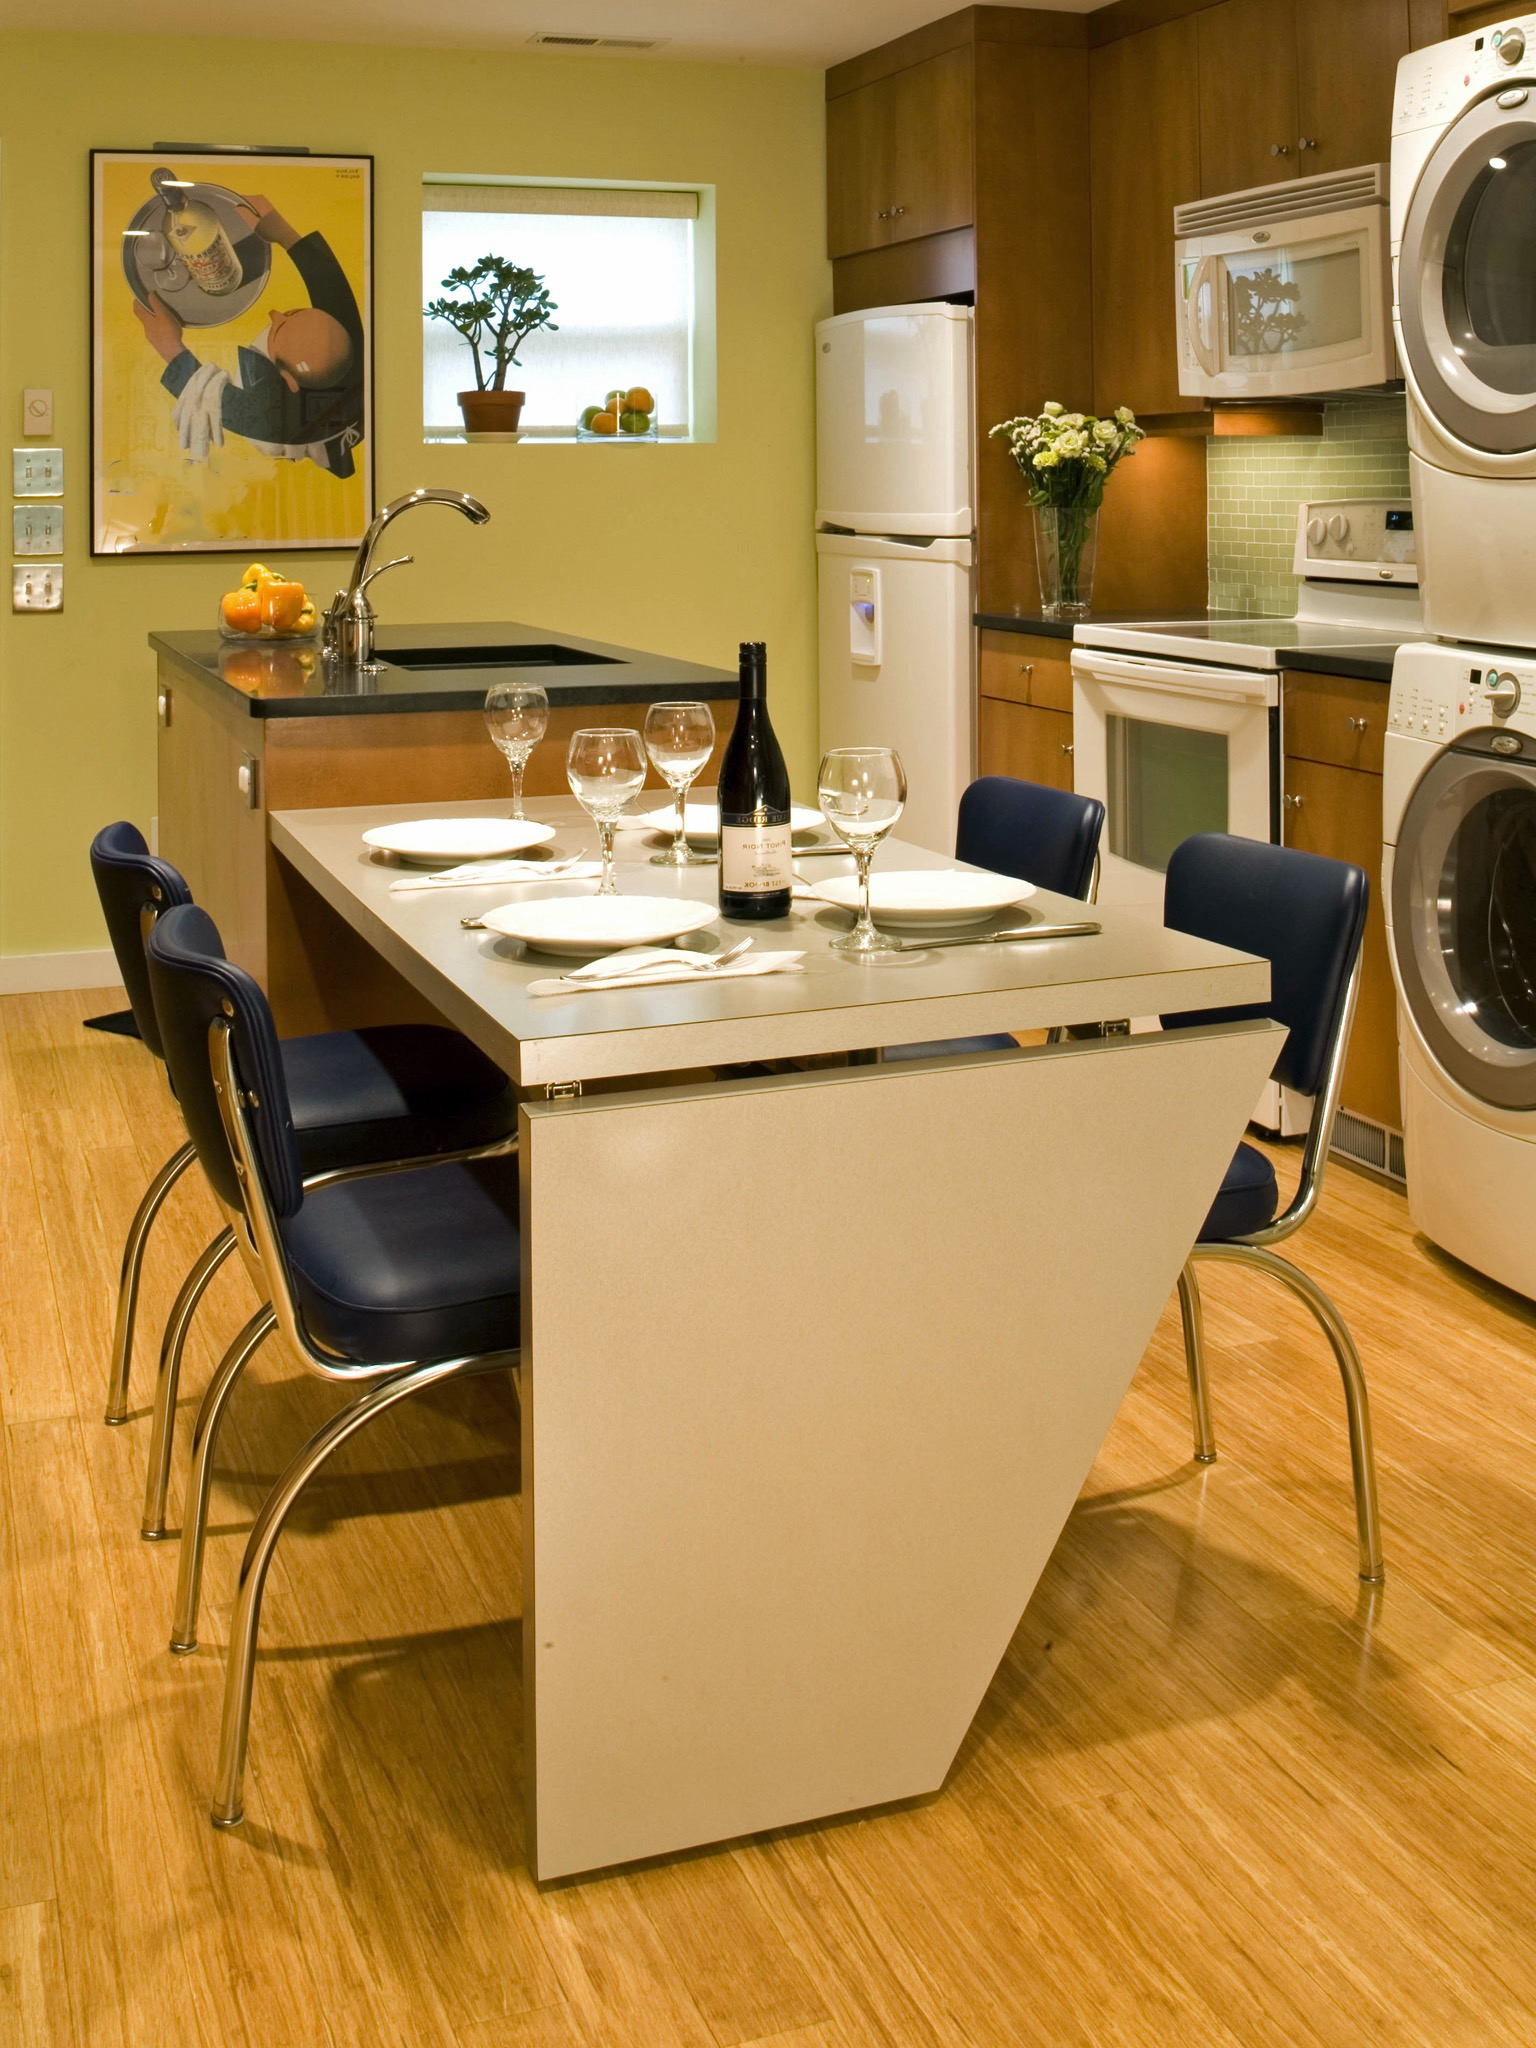 Laundry Room In Kitchen Small Space Solution Kitchen And Laundry Room Combo 15127